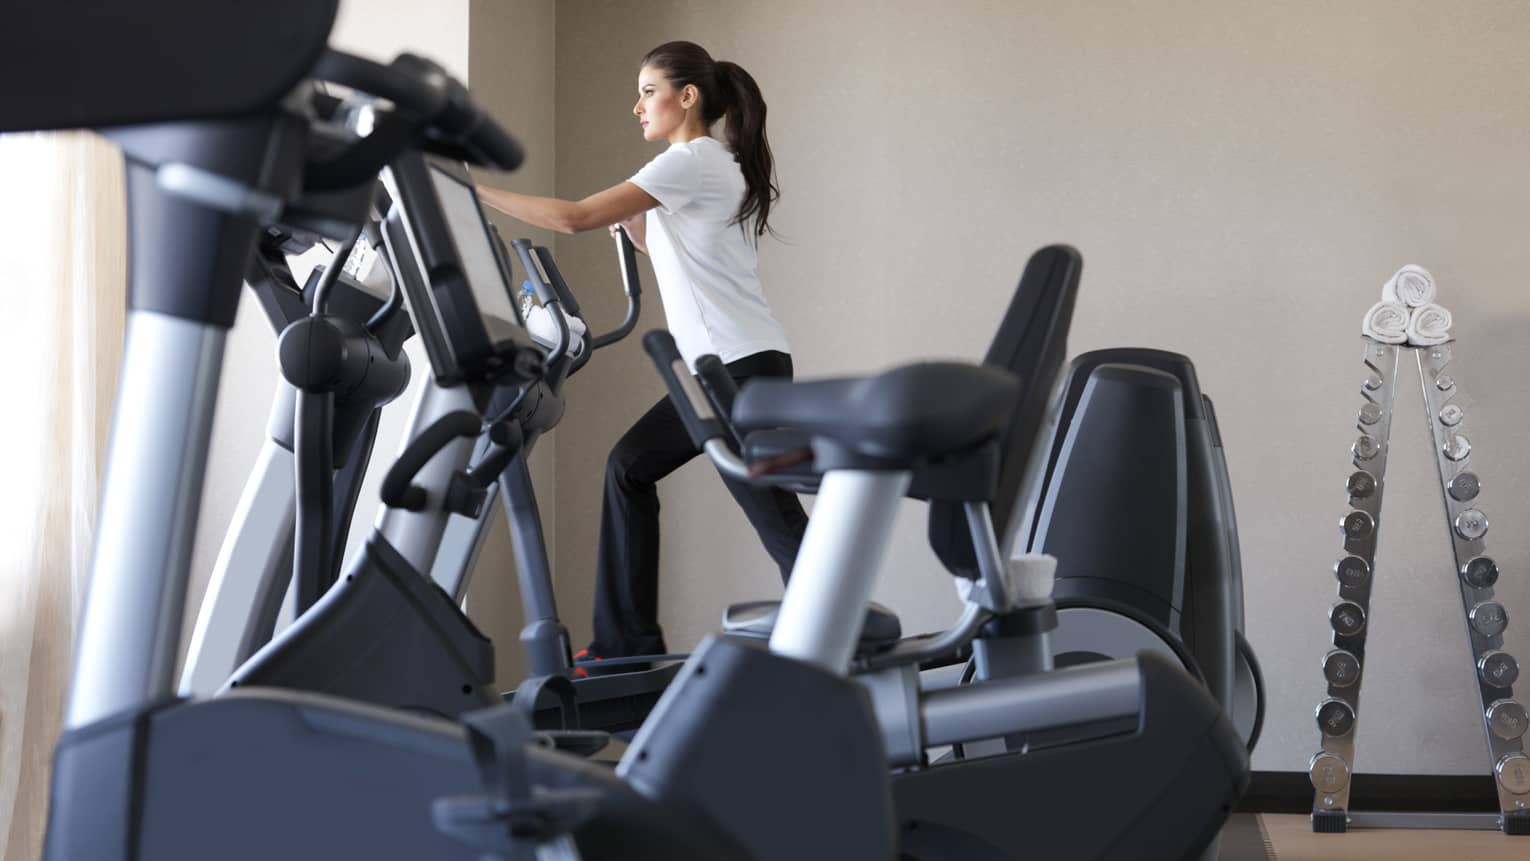 Woman in white shirt, black pants works out on cardio elliptical machine in sunny Fitness Centre